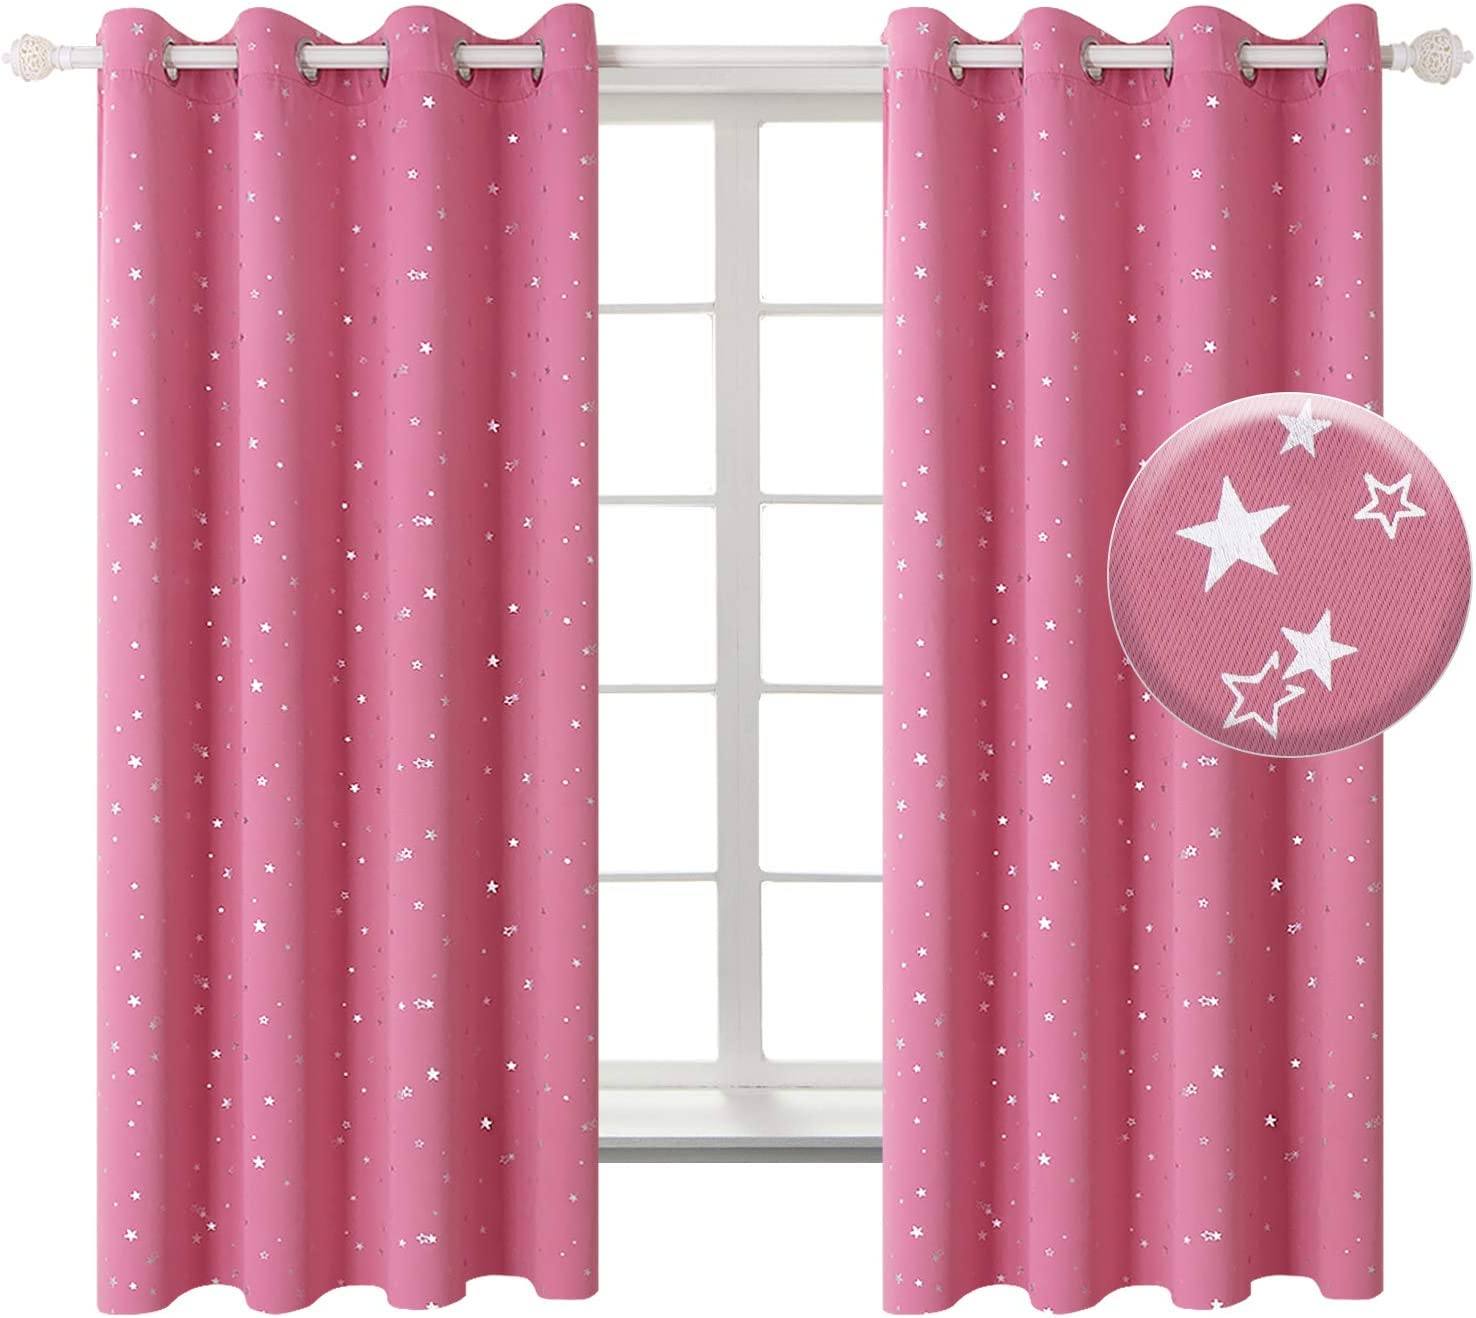 BGment Kids Blackout Curtains for Bedroom - Silver Star Printed Thermal Insulated Room Darkening Grommet Curtains for Living Room, Set of 2 Panels (52 x 63 Inch, Pink)